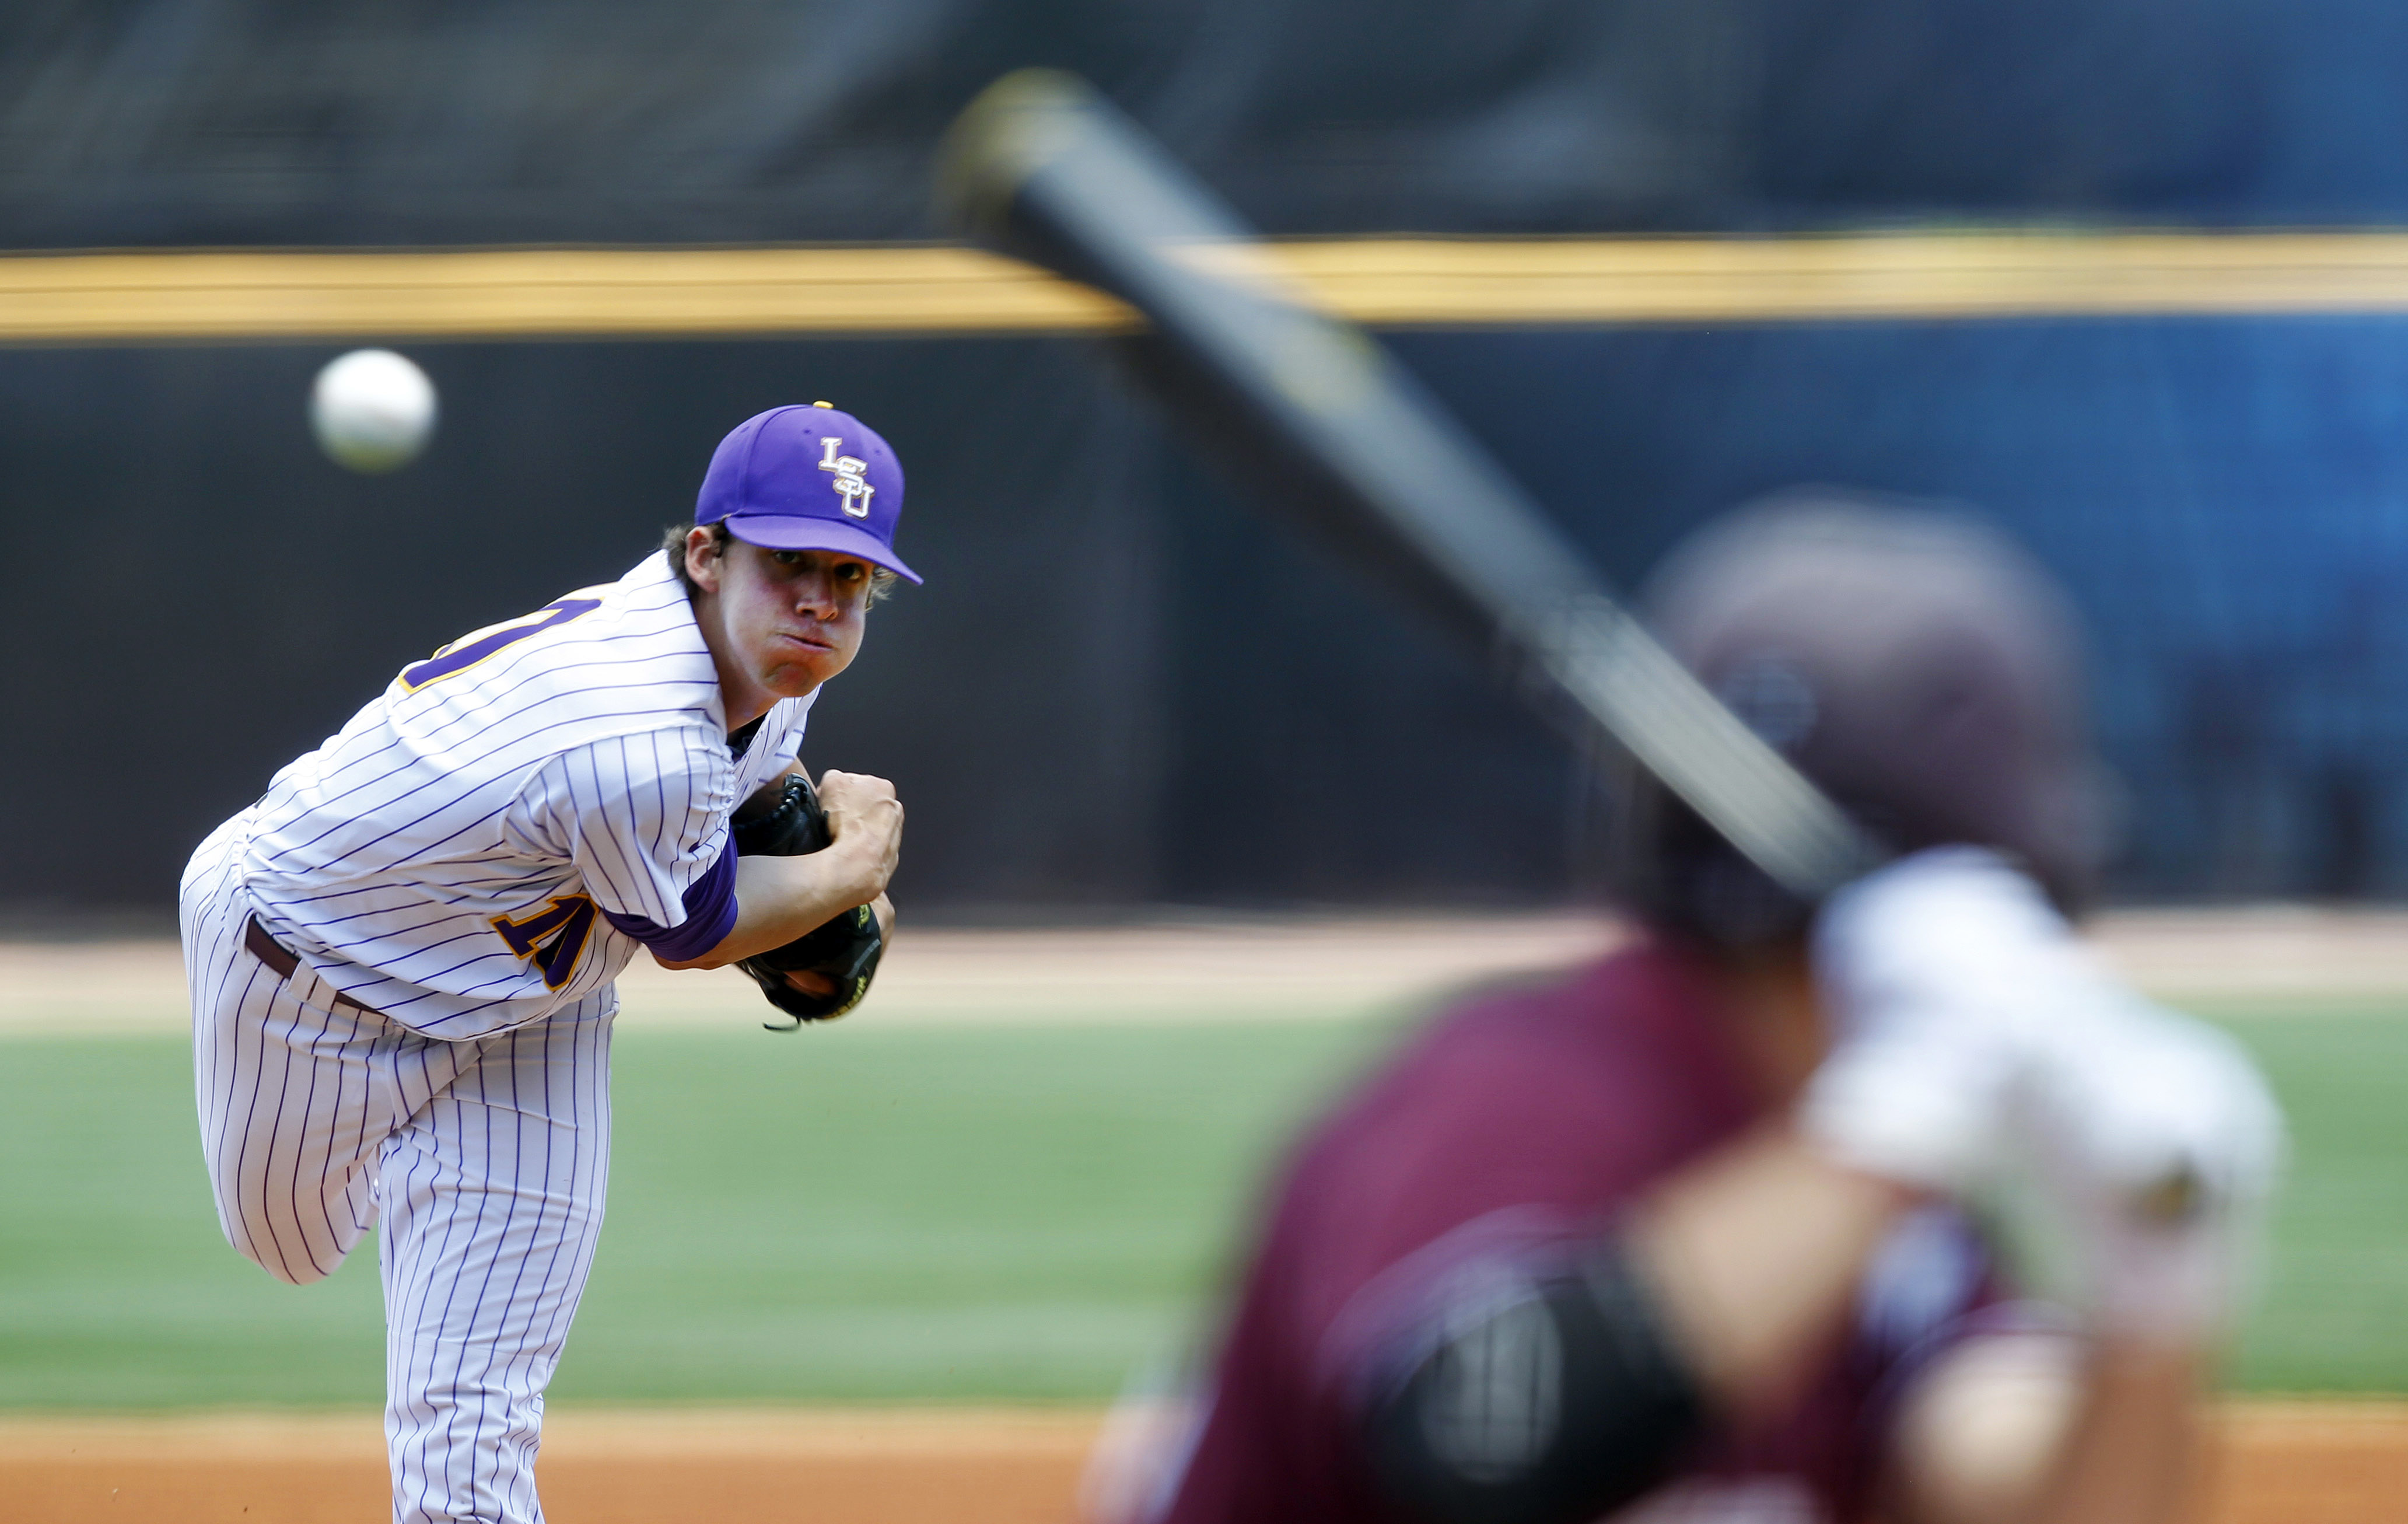 Aaron Nola pitching for LSU against Mississippi State in May 2012.